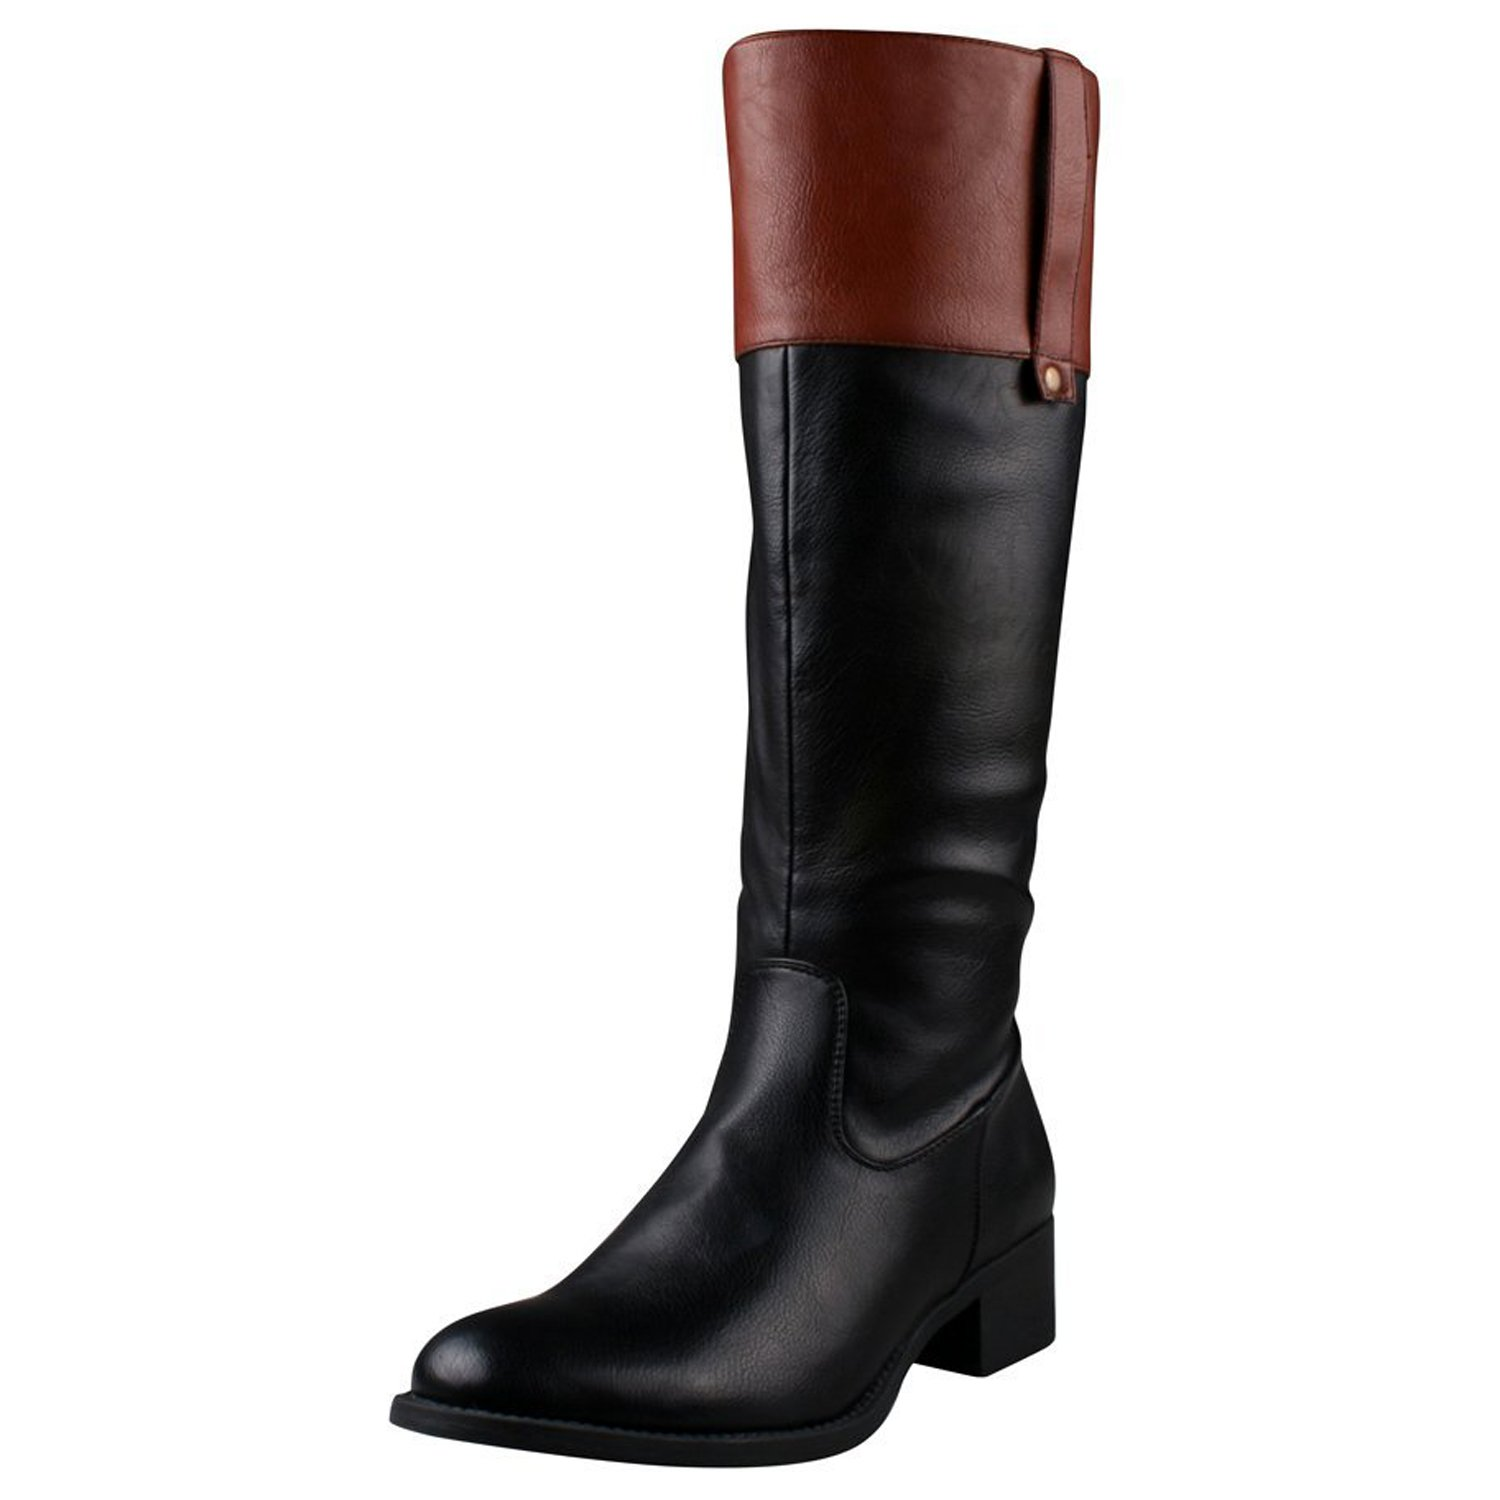 22d8d801faa Refresh Alto-03 Women's Low Heel Side Zipper Knee High Two Tone Riding Boots